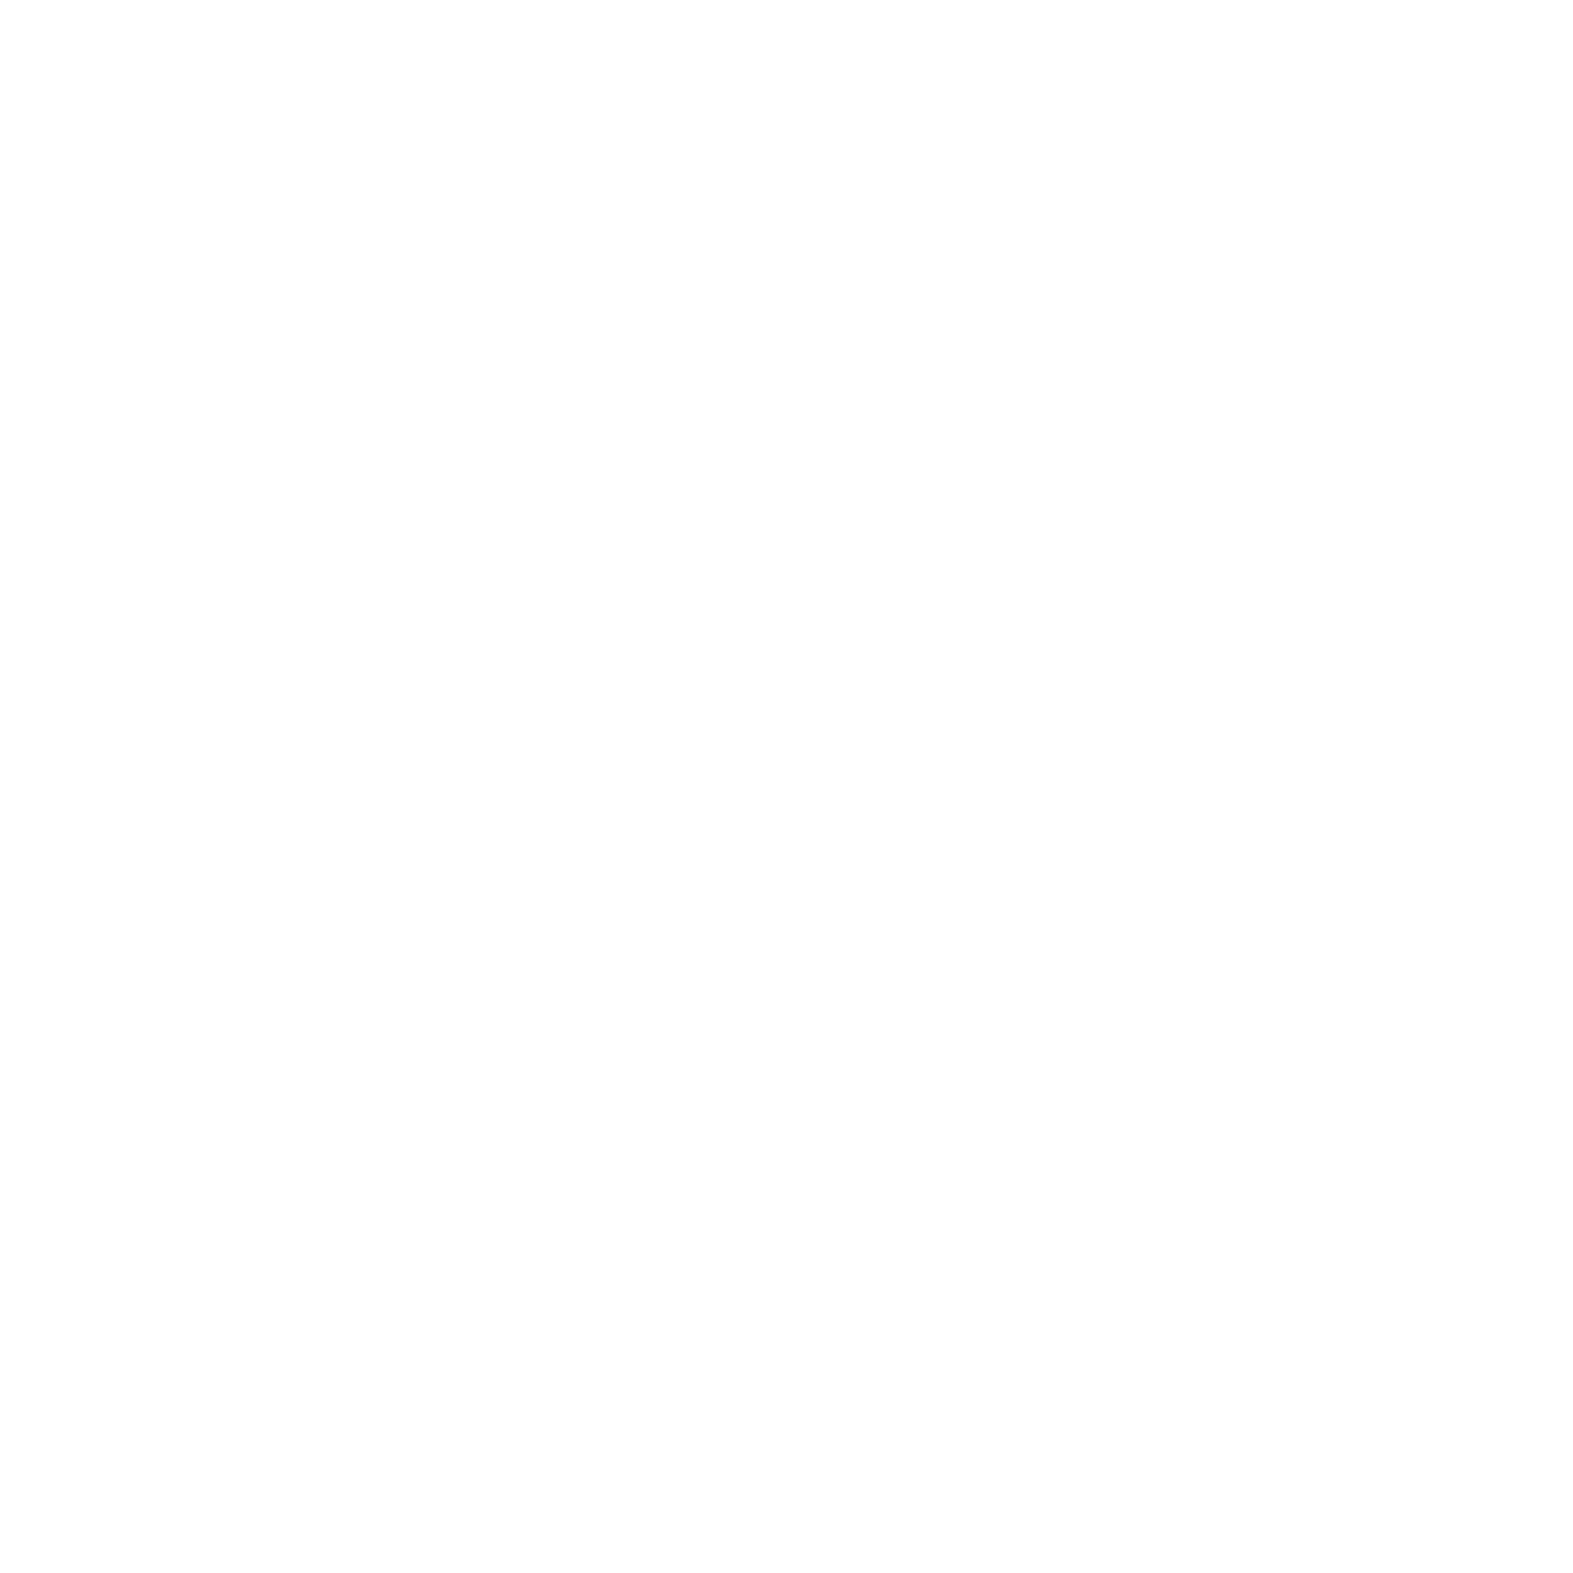 east-renfrewshire-council-logo